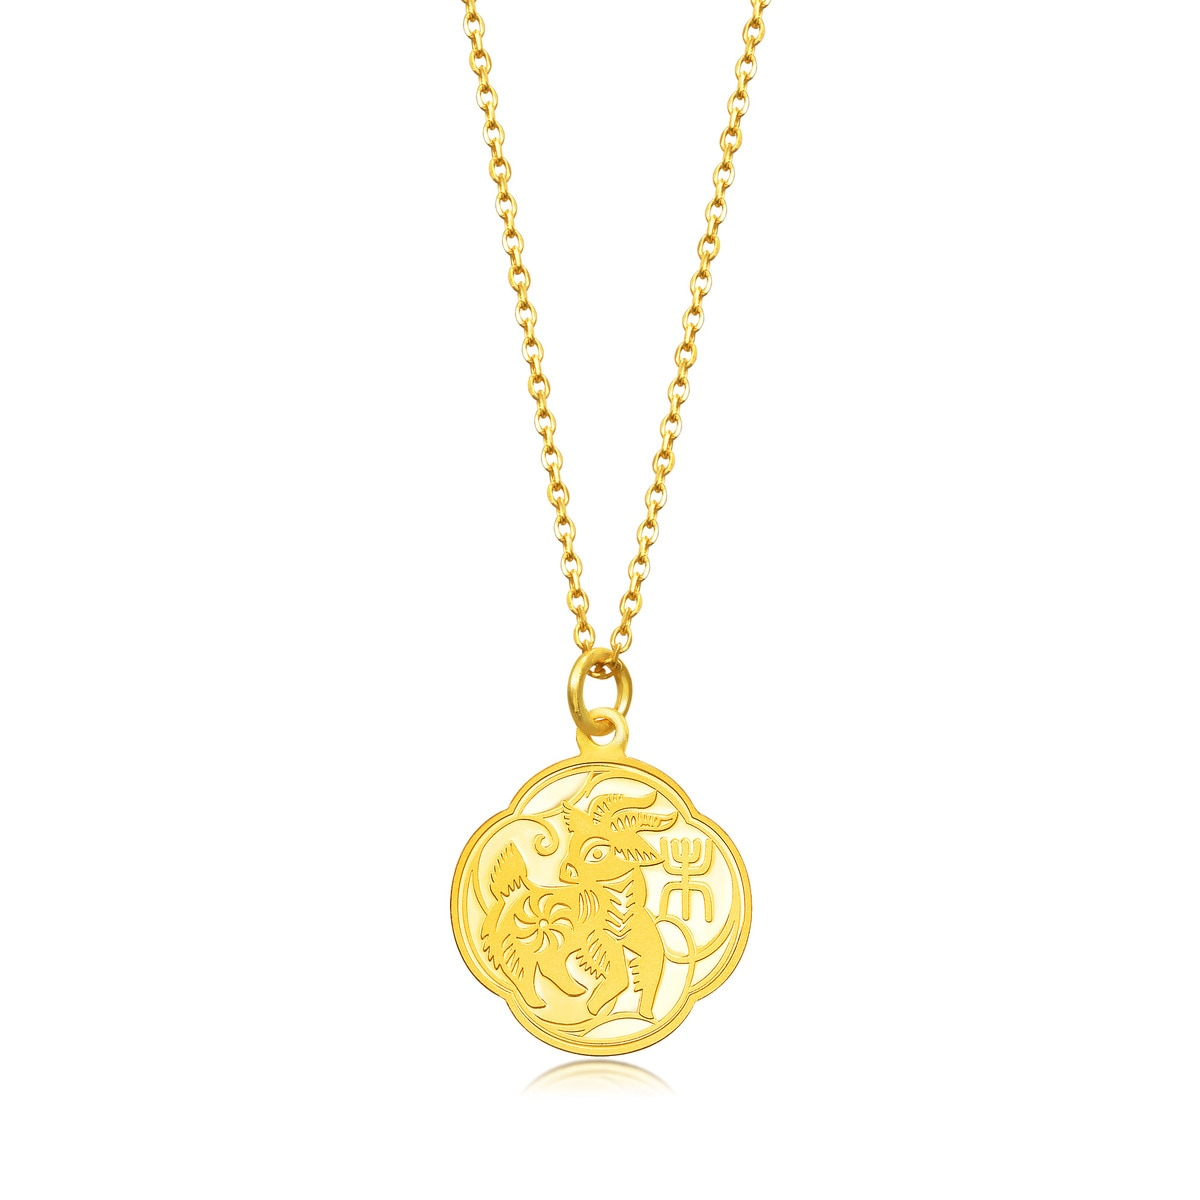 pendant uk loveness necklace gold dog image lee zodiac horoscope chinese